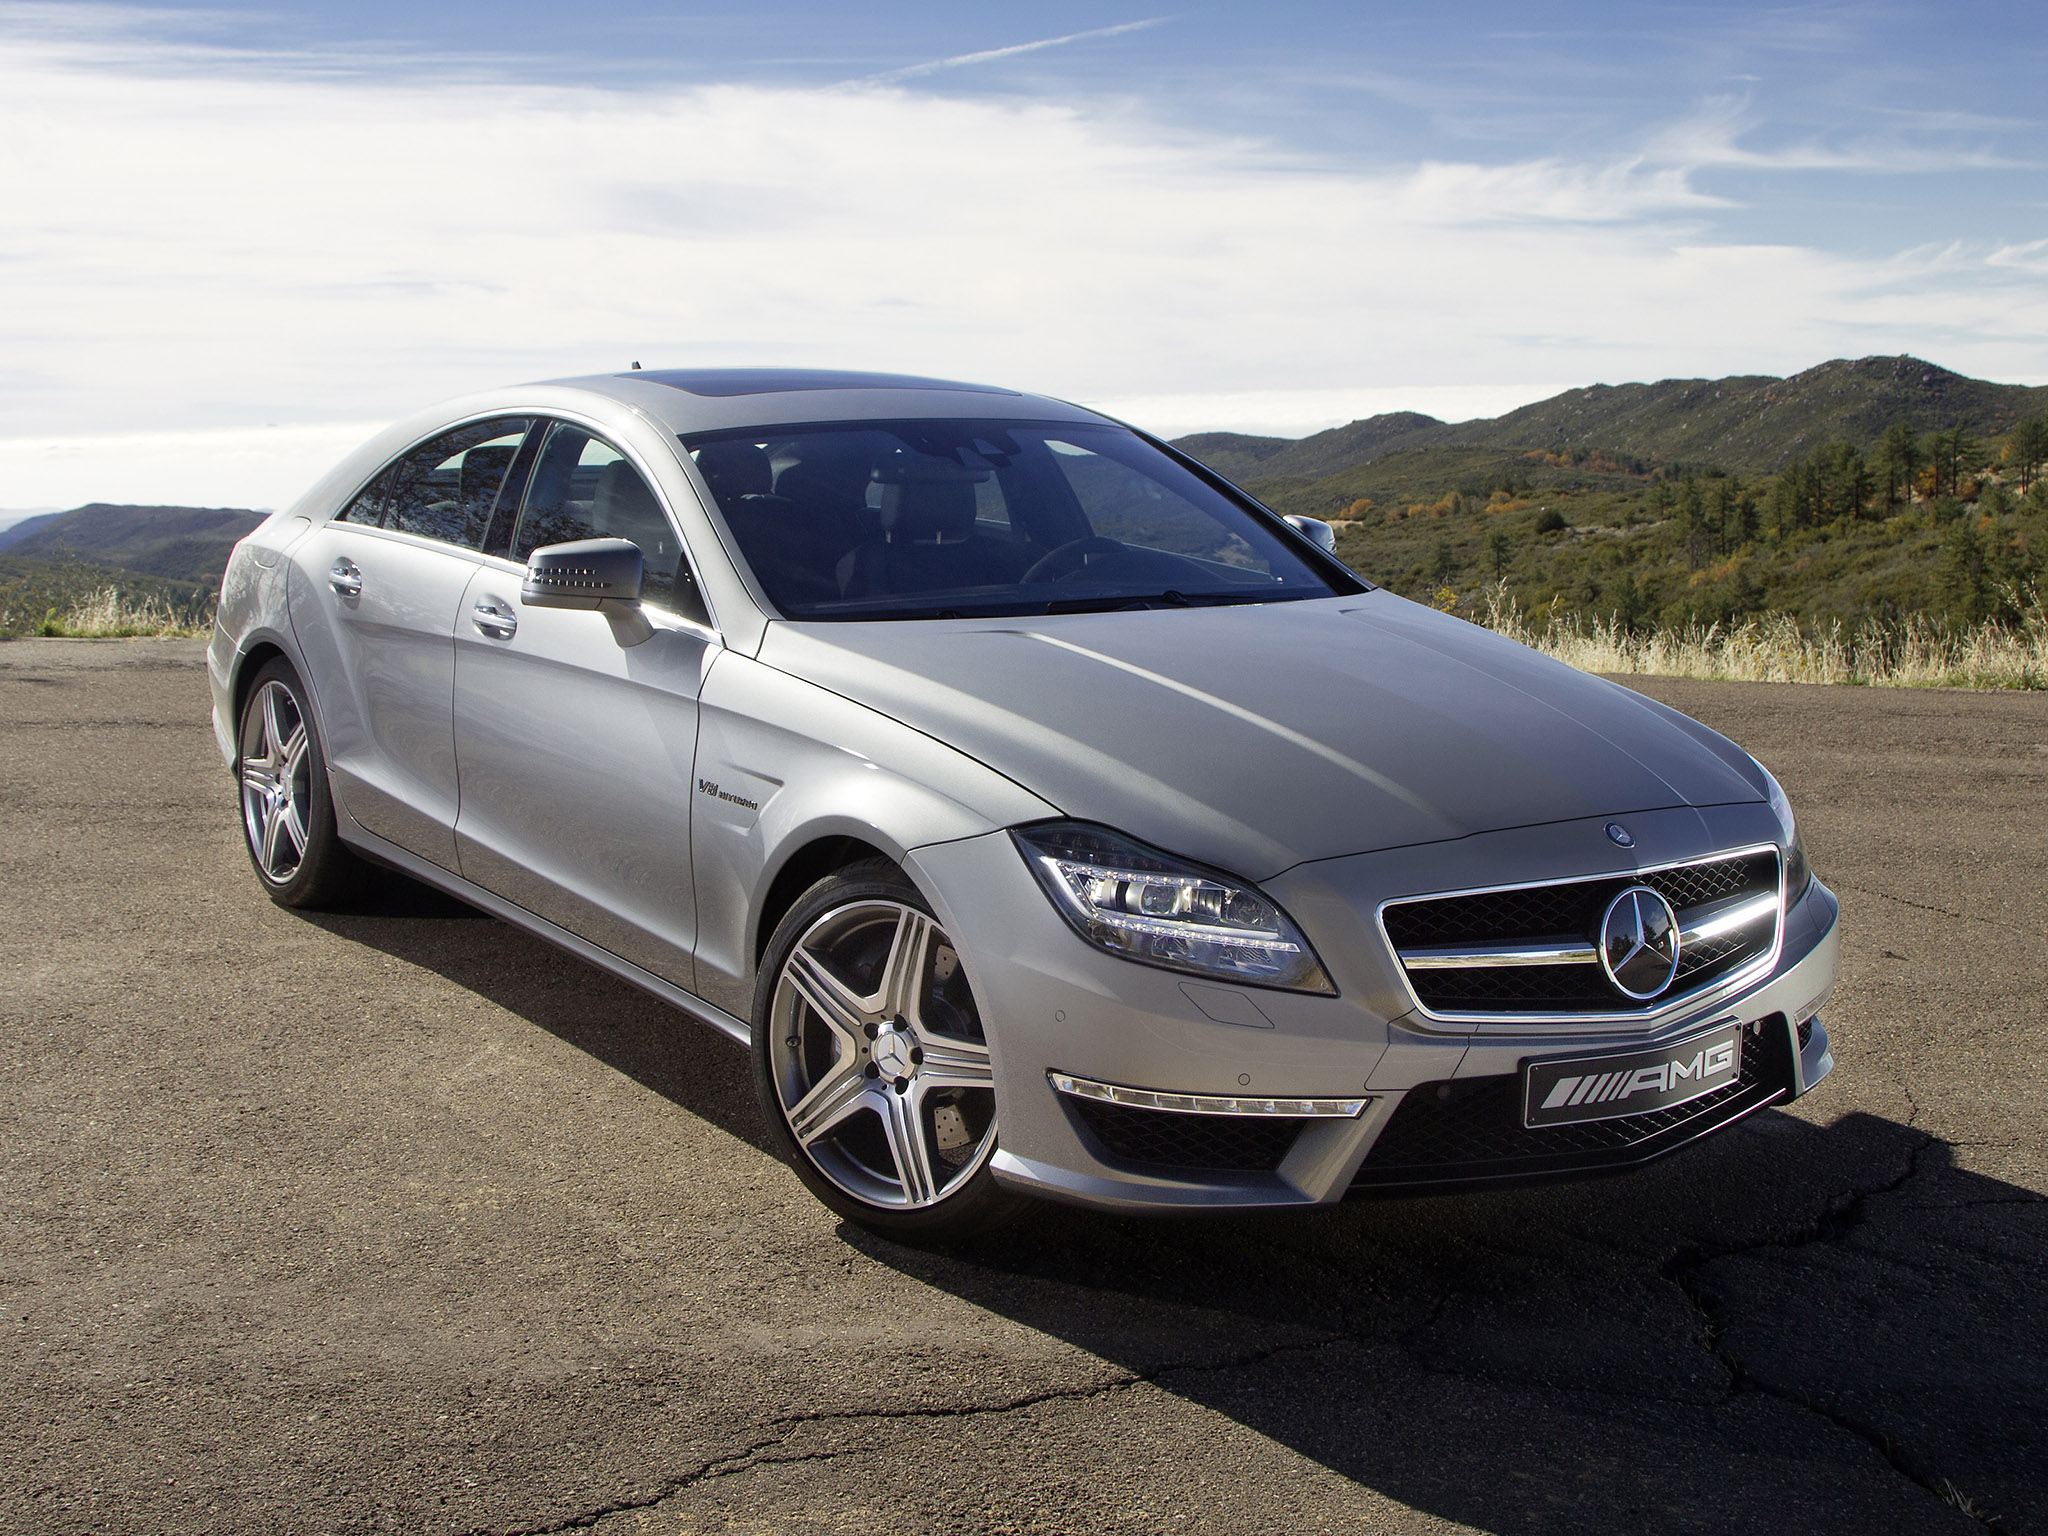 2018 Mercedes Benz CLS63 AMG US Version photo - 1